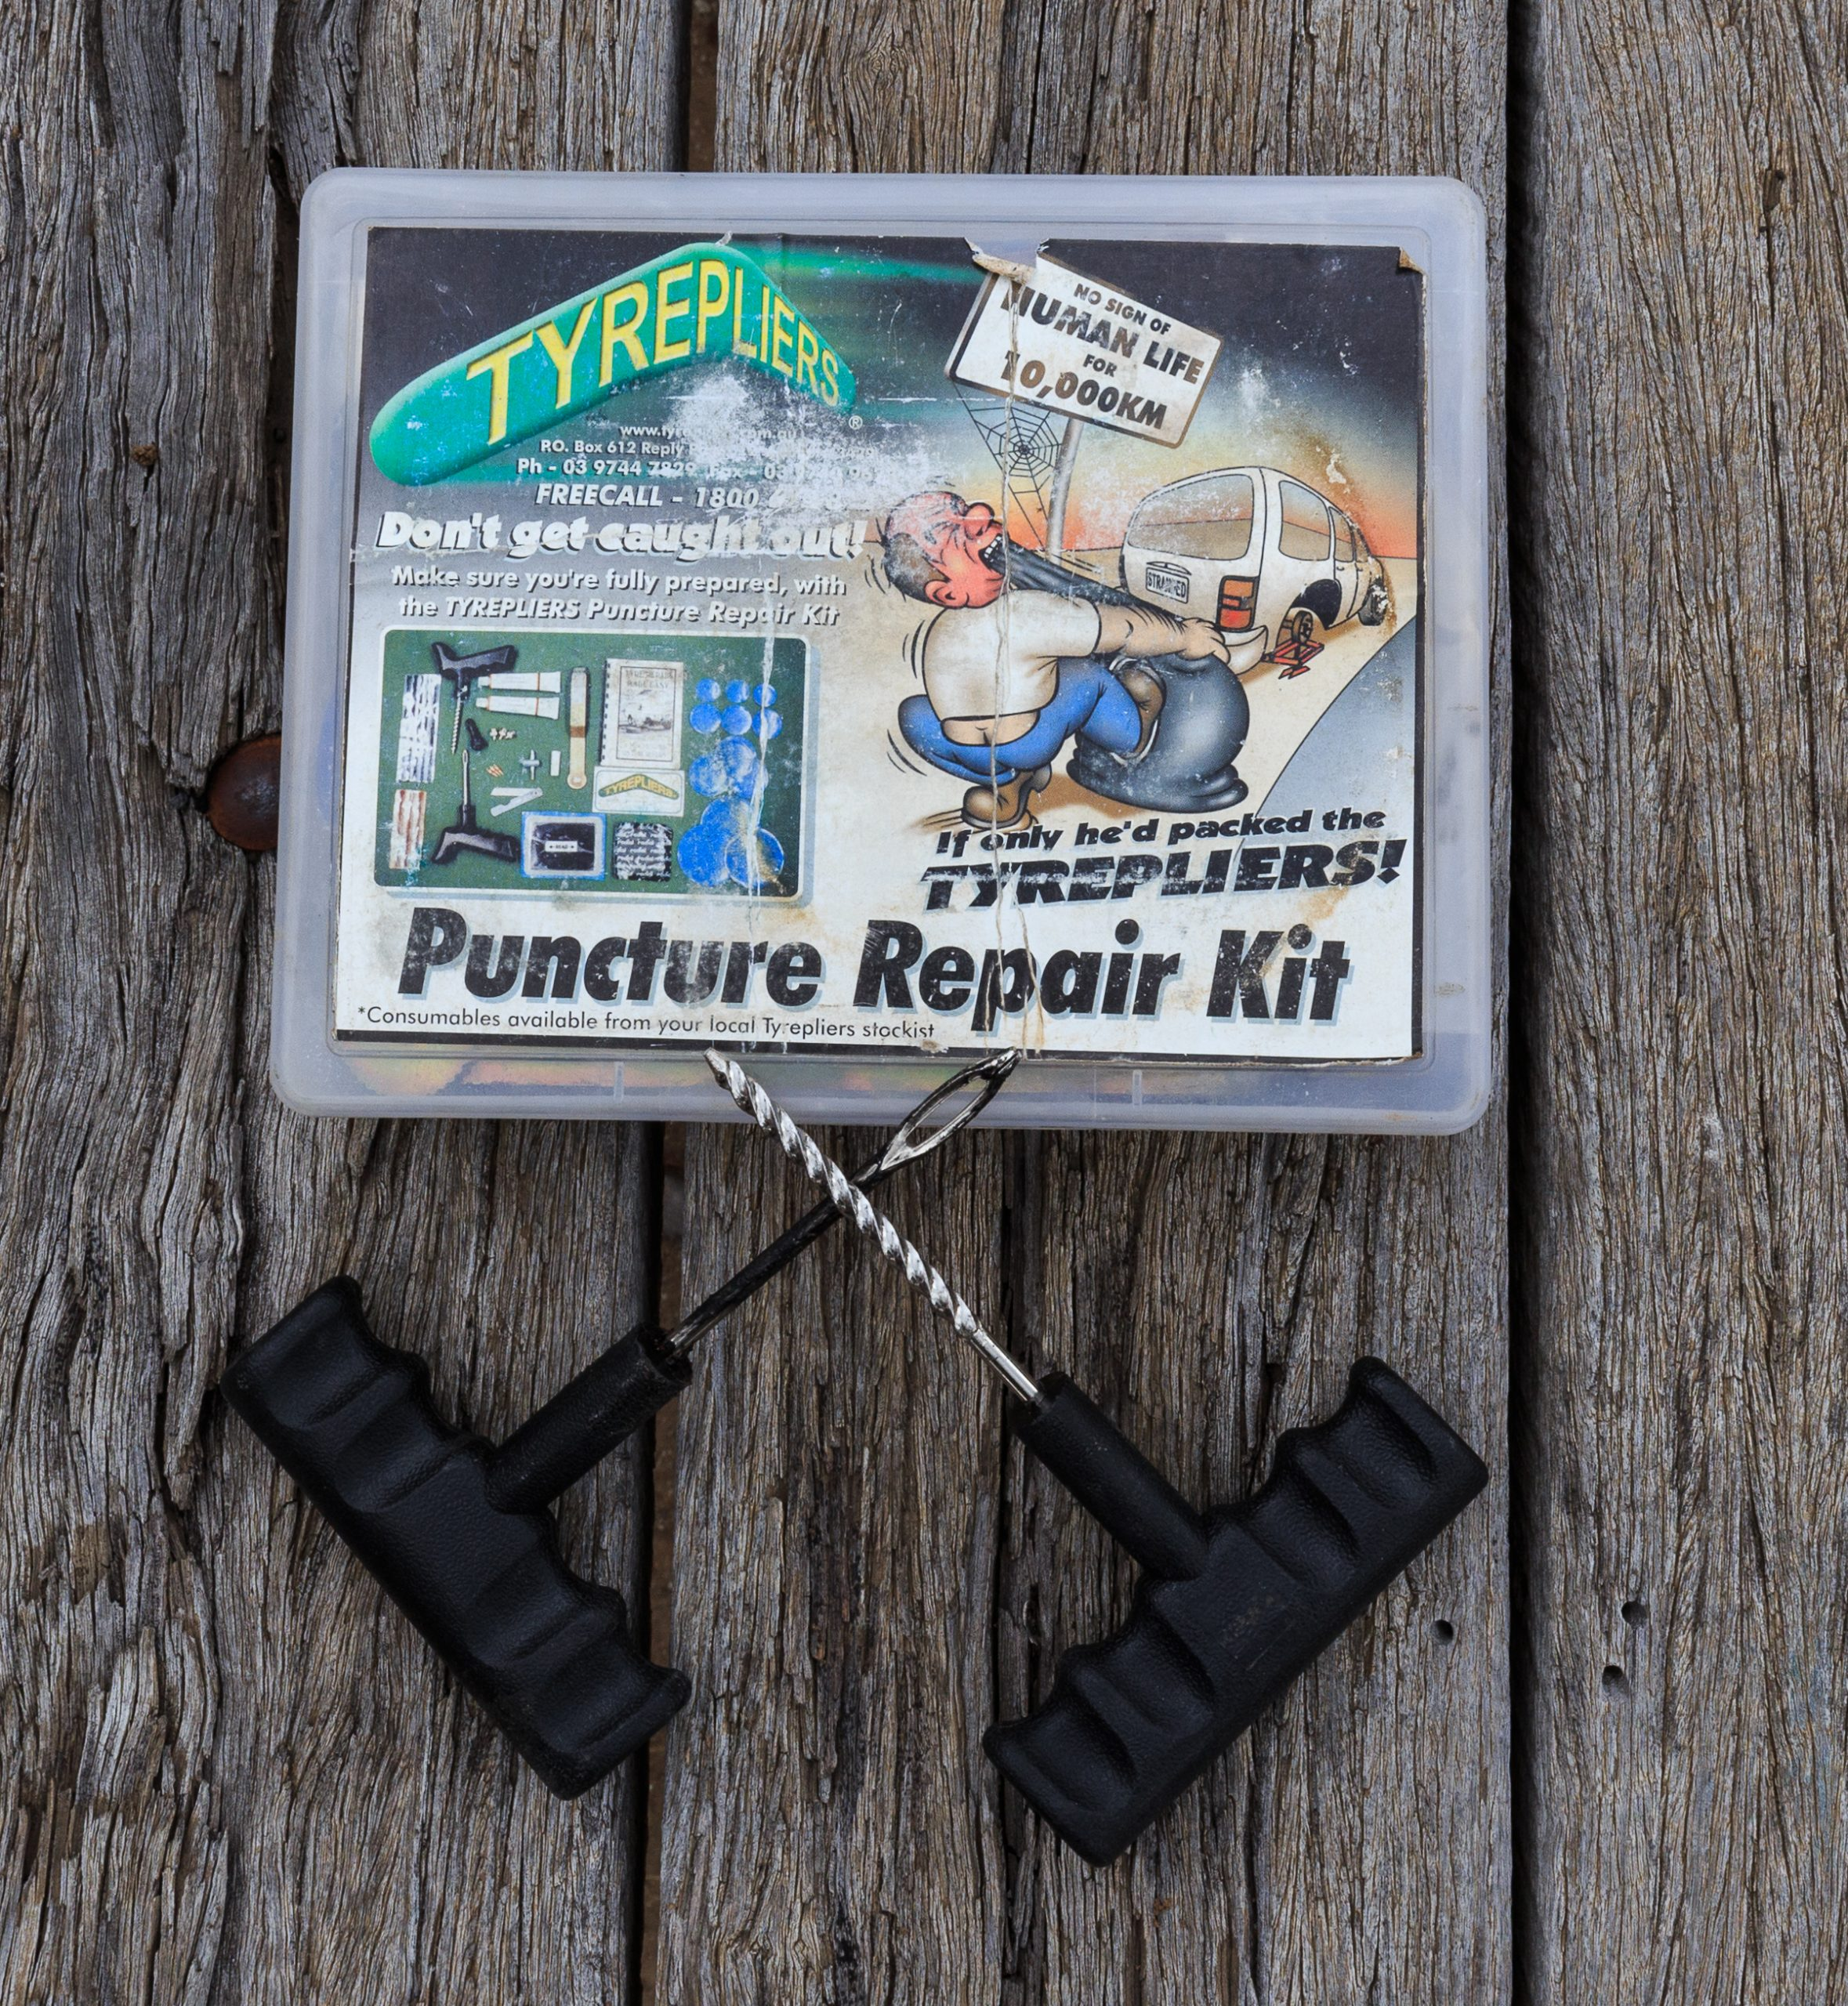 A puncture repair kit is an RV essential tool